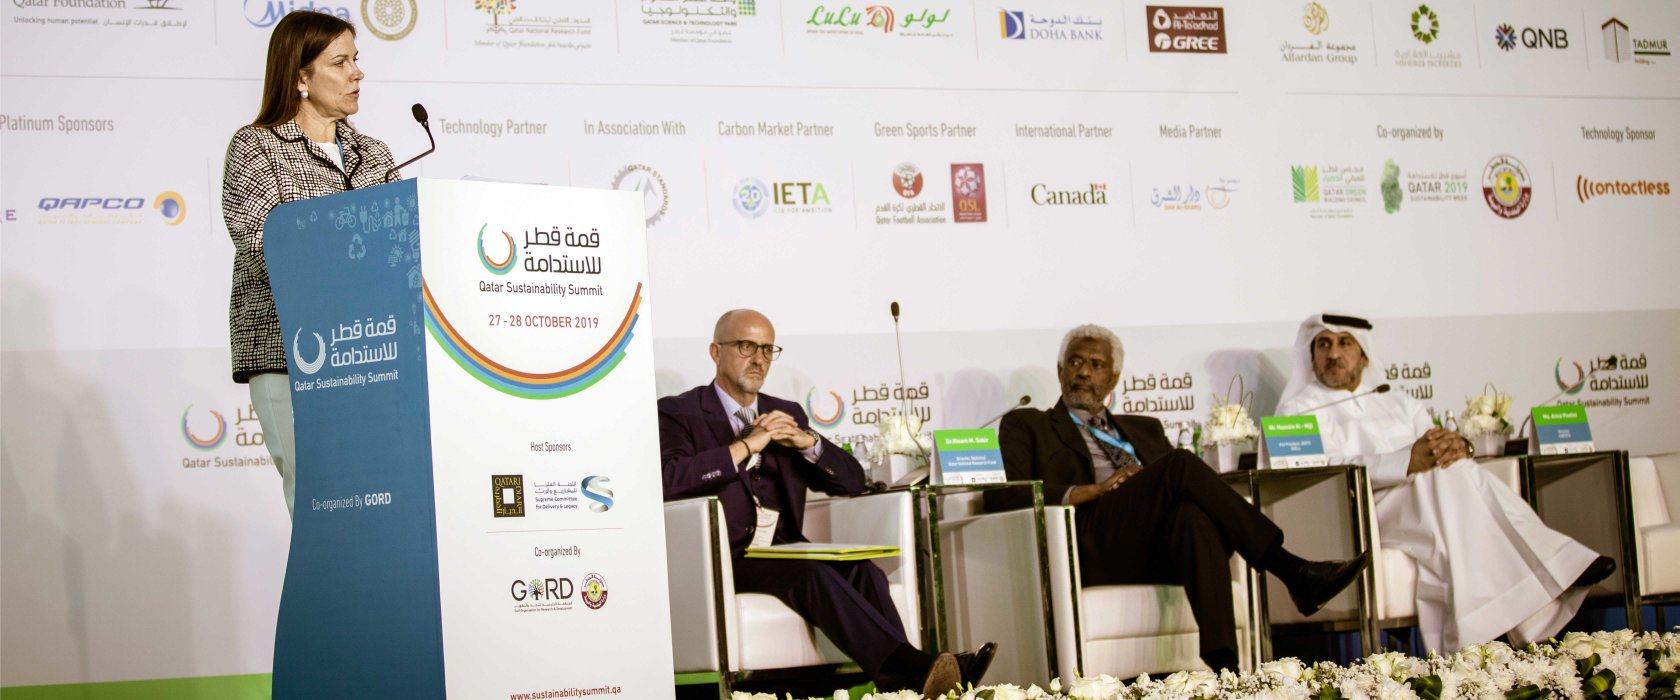 More efforts should be invested to   retain Qatar's research talent, Sustainability Summit told